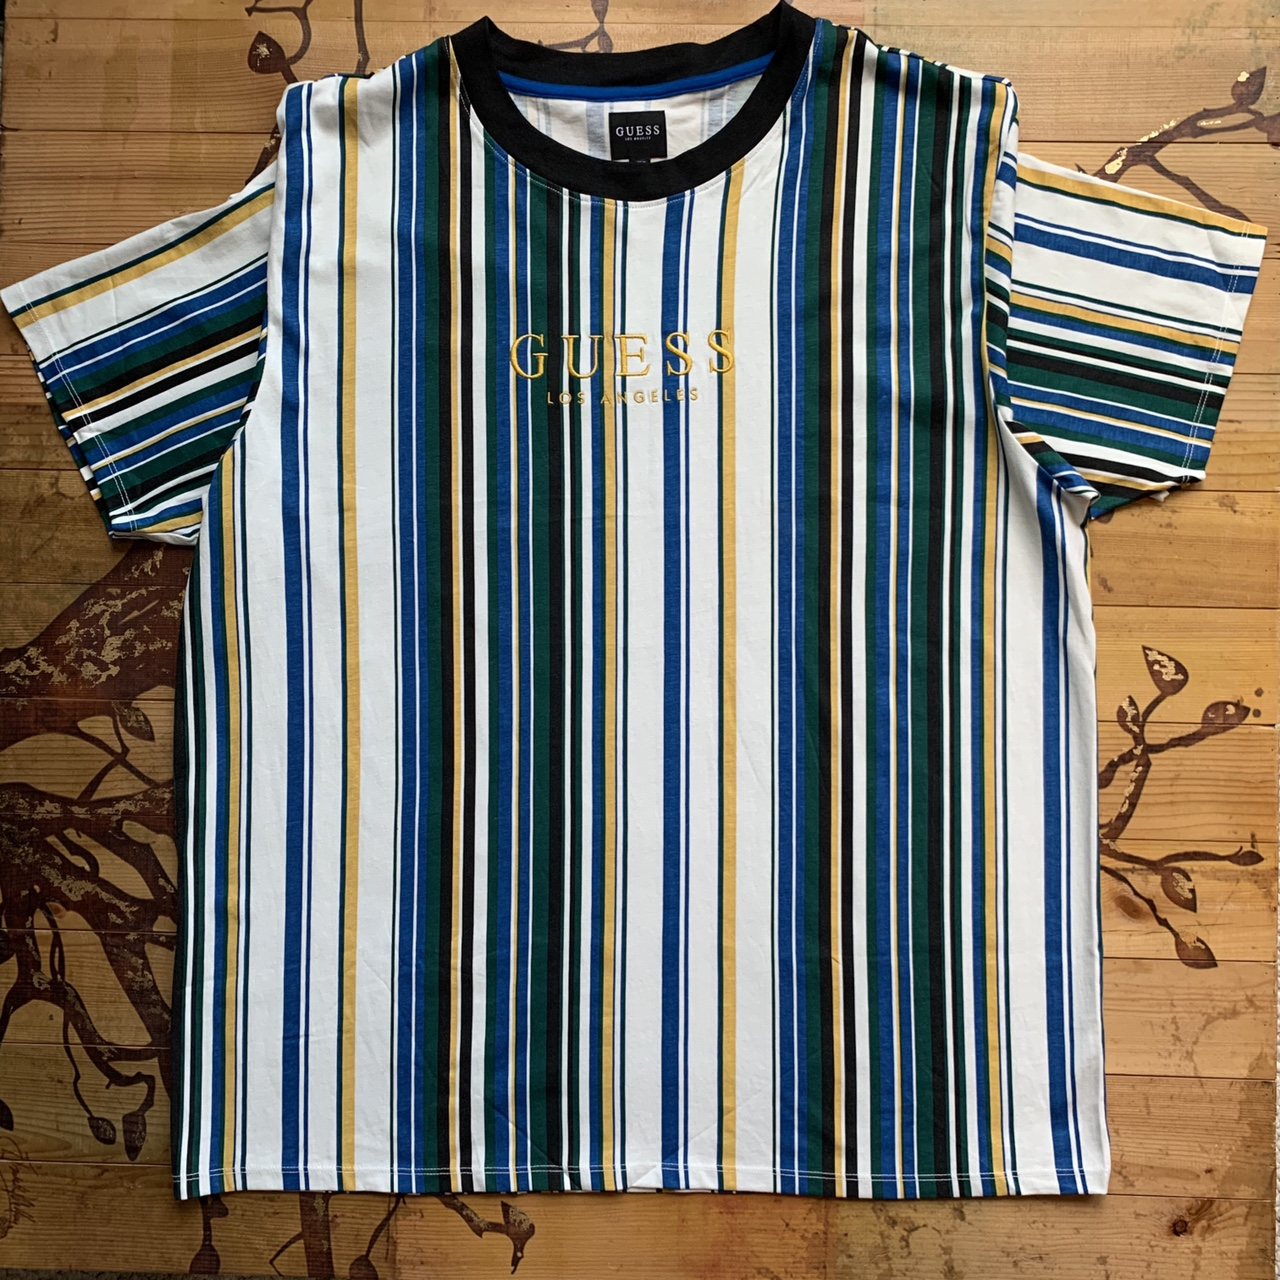 Product Image 1 - Beautiful guess striped tee #streetwear #vintage